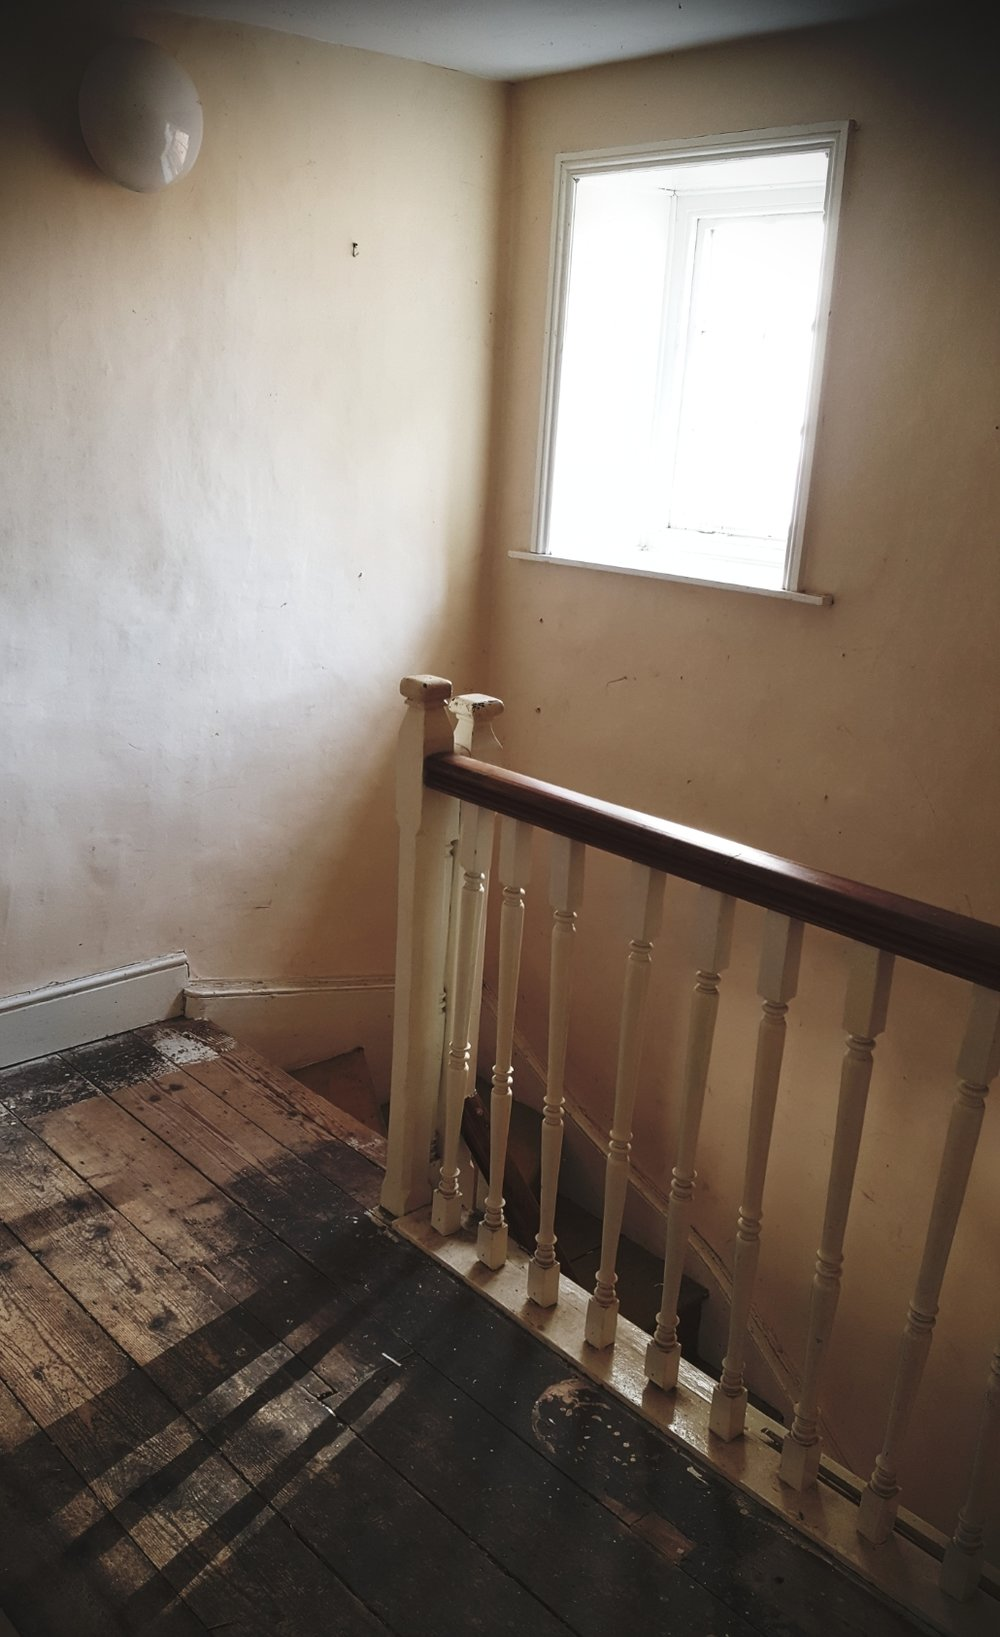 The upstairs landing and staircase. The entire upper floor had to be removed as part of the renovation and replaced after the joists were found to be rotten